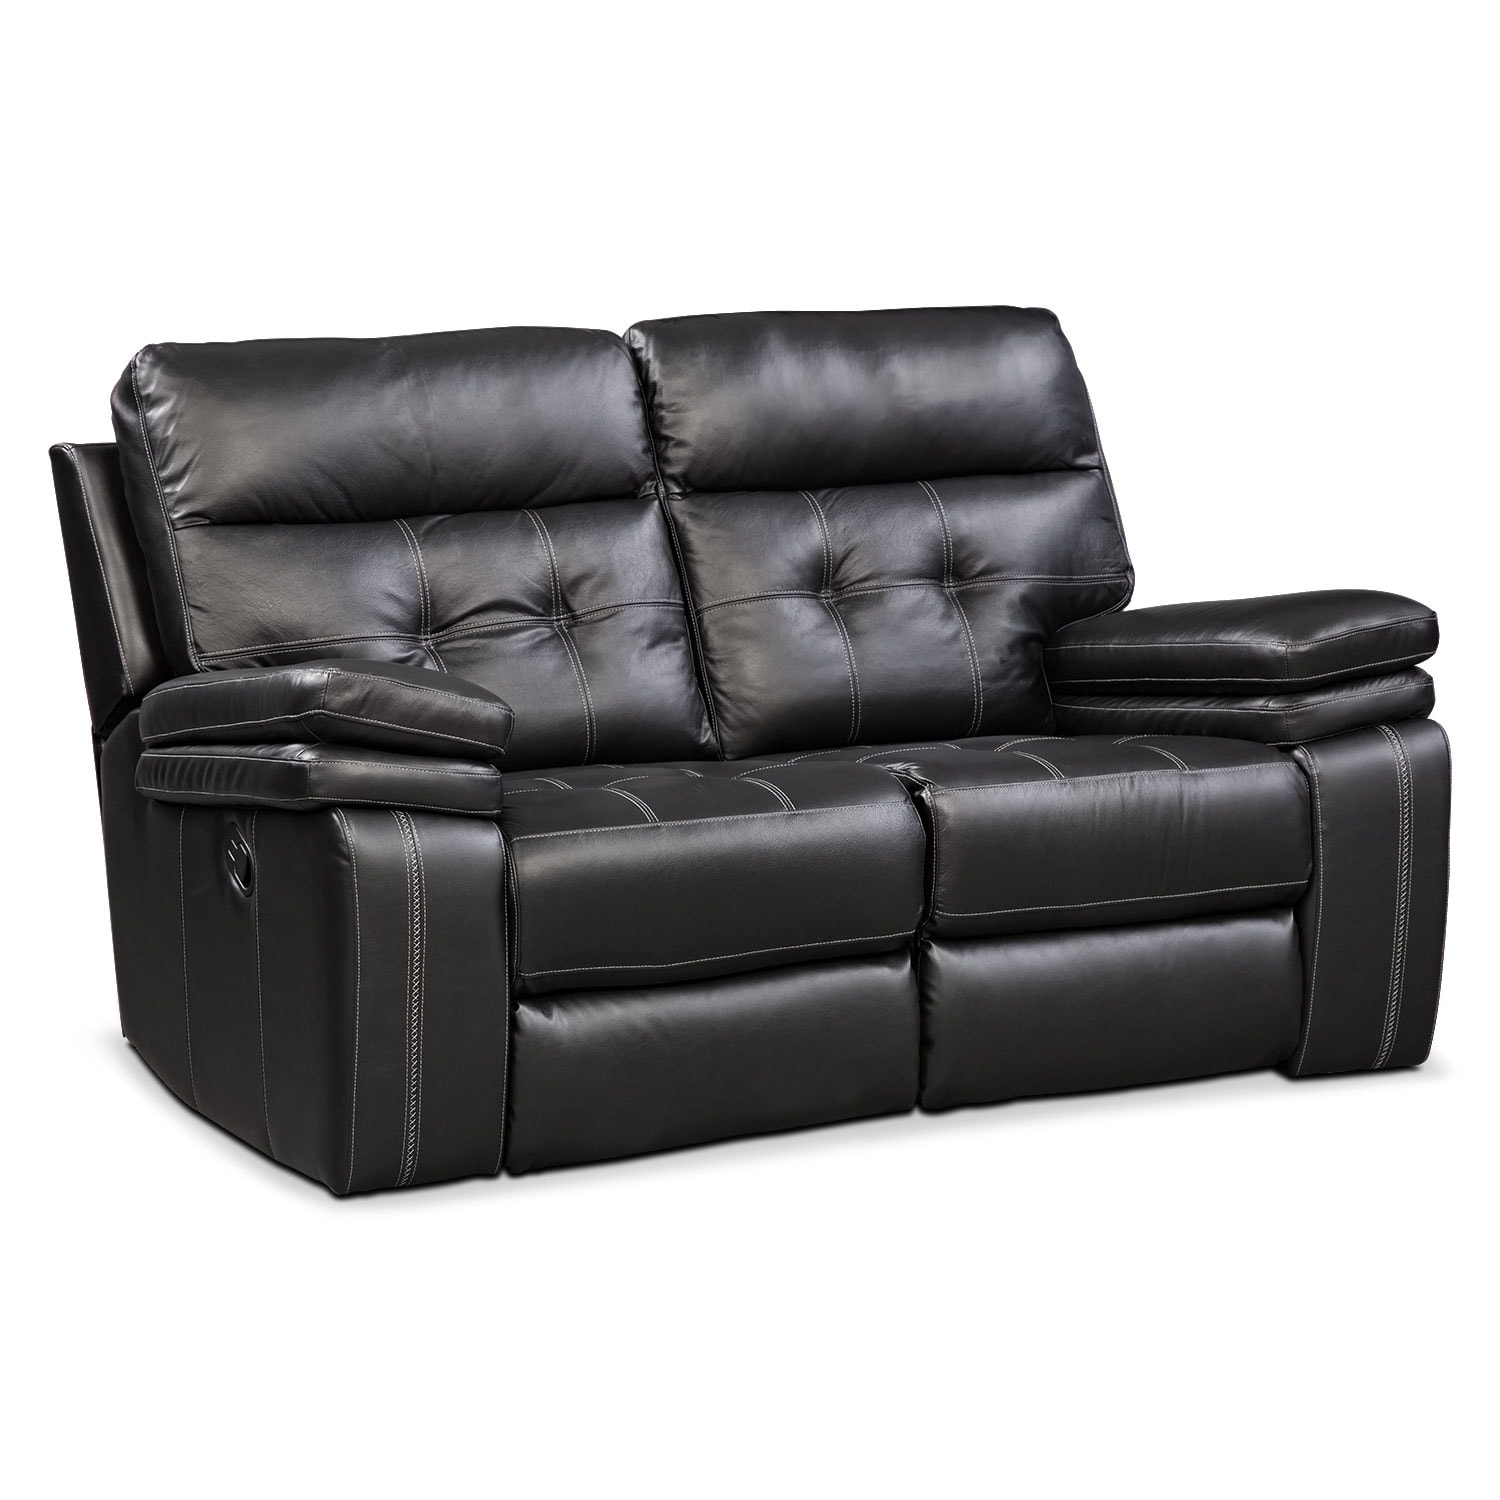 [Brisco Black Manual Reclining Loveseat]